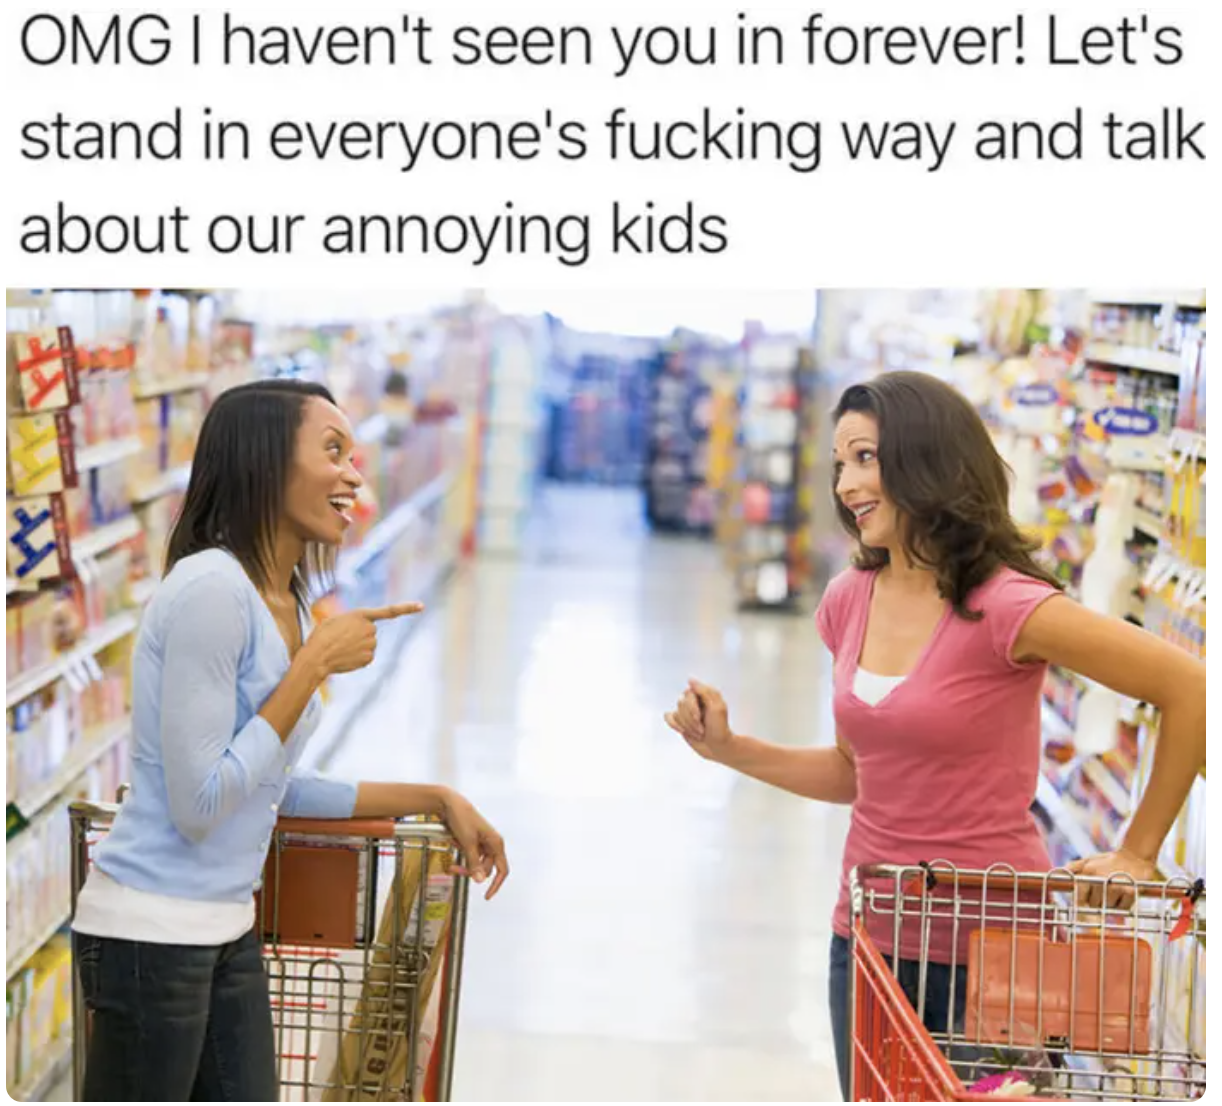 two people chatting in an aisle